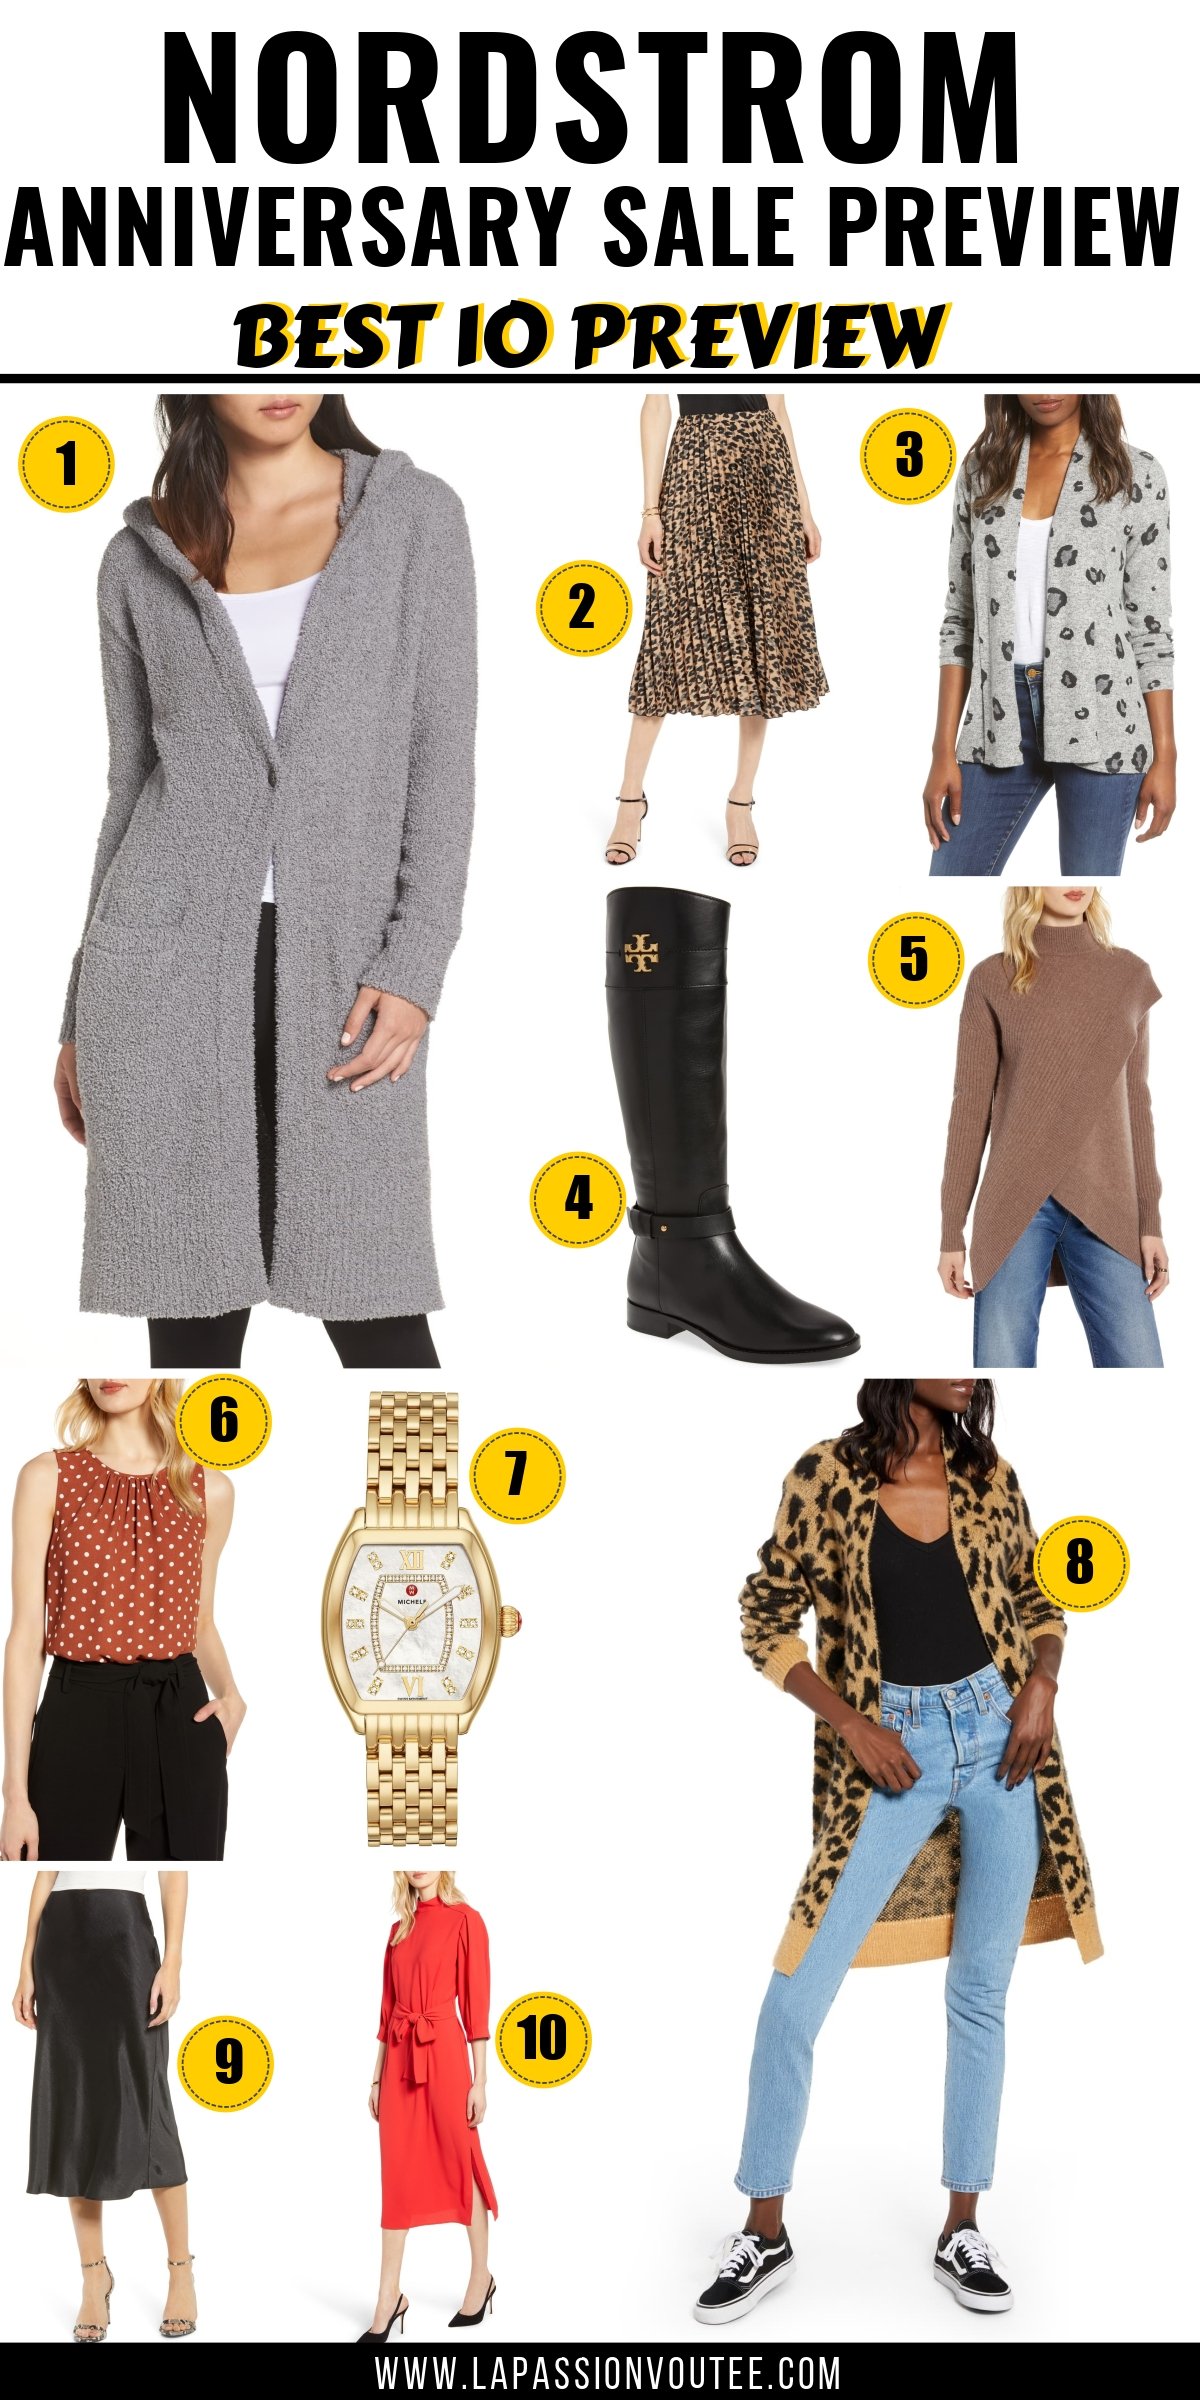 Read this post first for a sneak peek of the 20 MOST-WANTED pieces from the Nordstrom Anniversary Sale 2019 catalog. PLUS everything you need to know about which pieces are likely to sell out during the Anniversary sale Early Access with tips on how to score the best deals on shoes, clothes, bags, jackets and skincare products. Nordstrom Anniversary Sale 2019 Preview Top Picks today